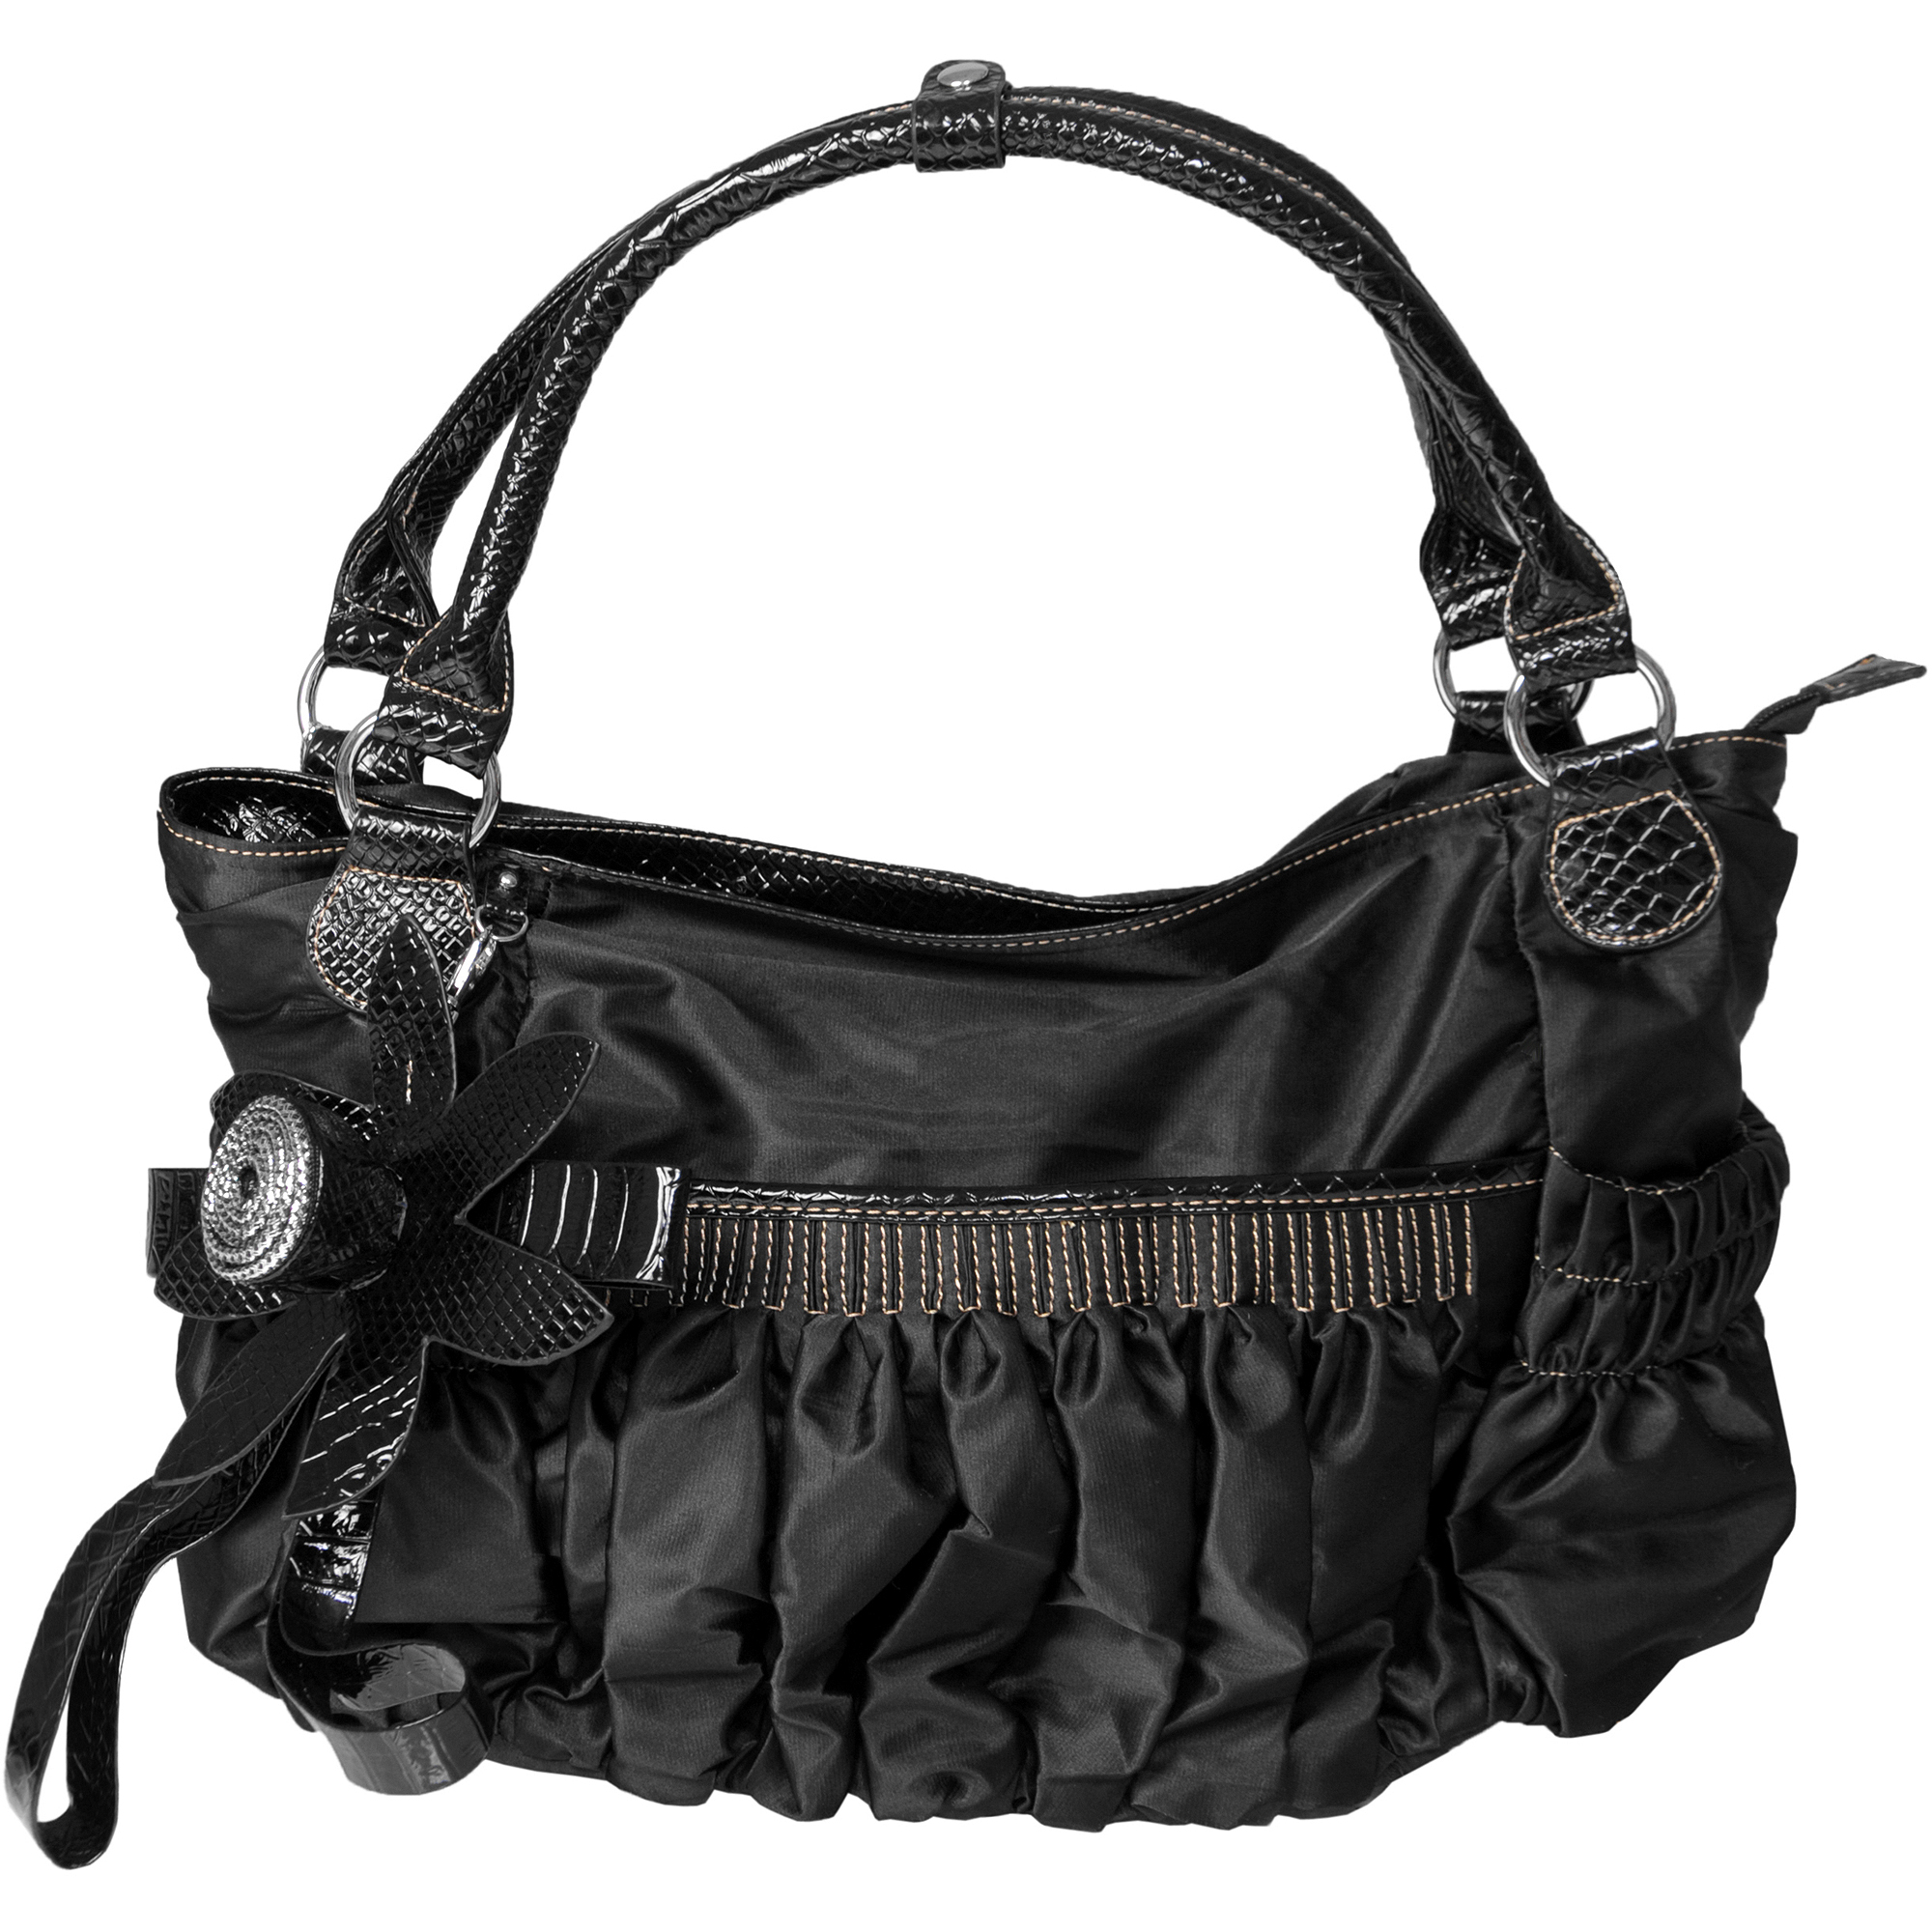 Brinley Co Women's Slouchy Ruched Double Handle Satchel Bag